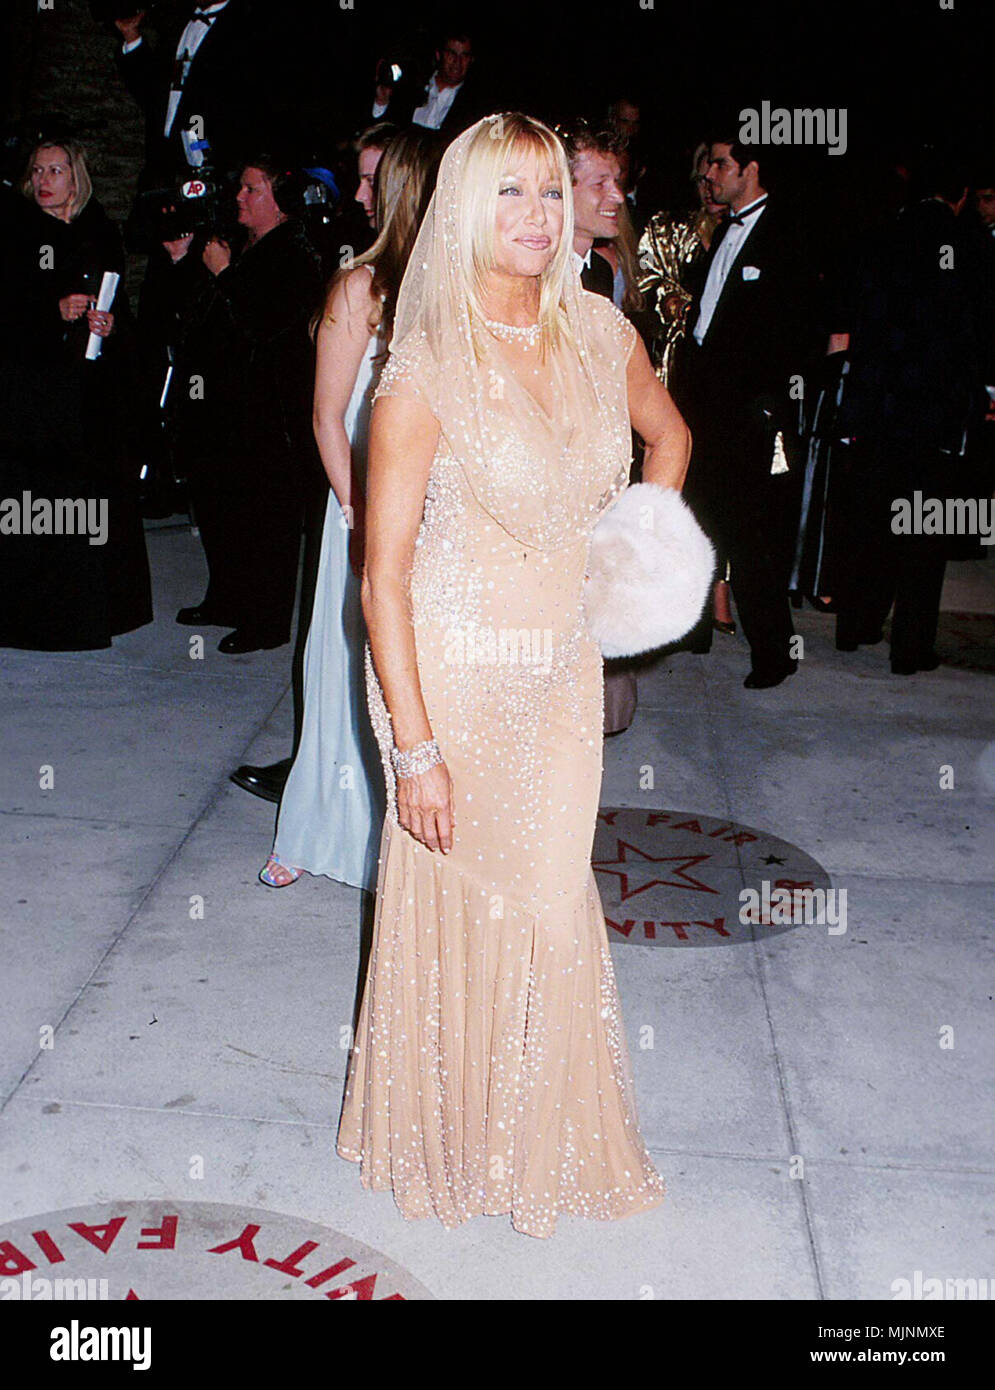 Suzanne Somers In A Tan Evening Dress Red Carpet Event Stock Photos ...